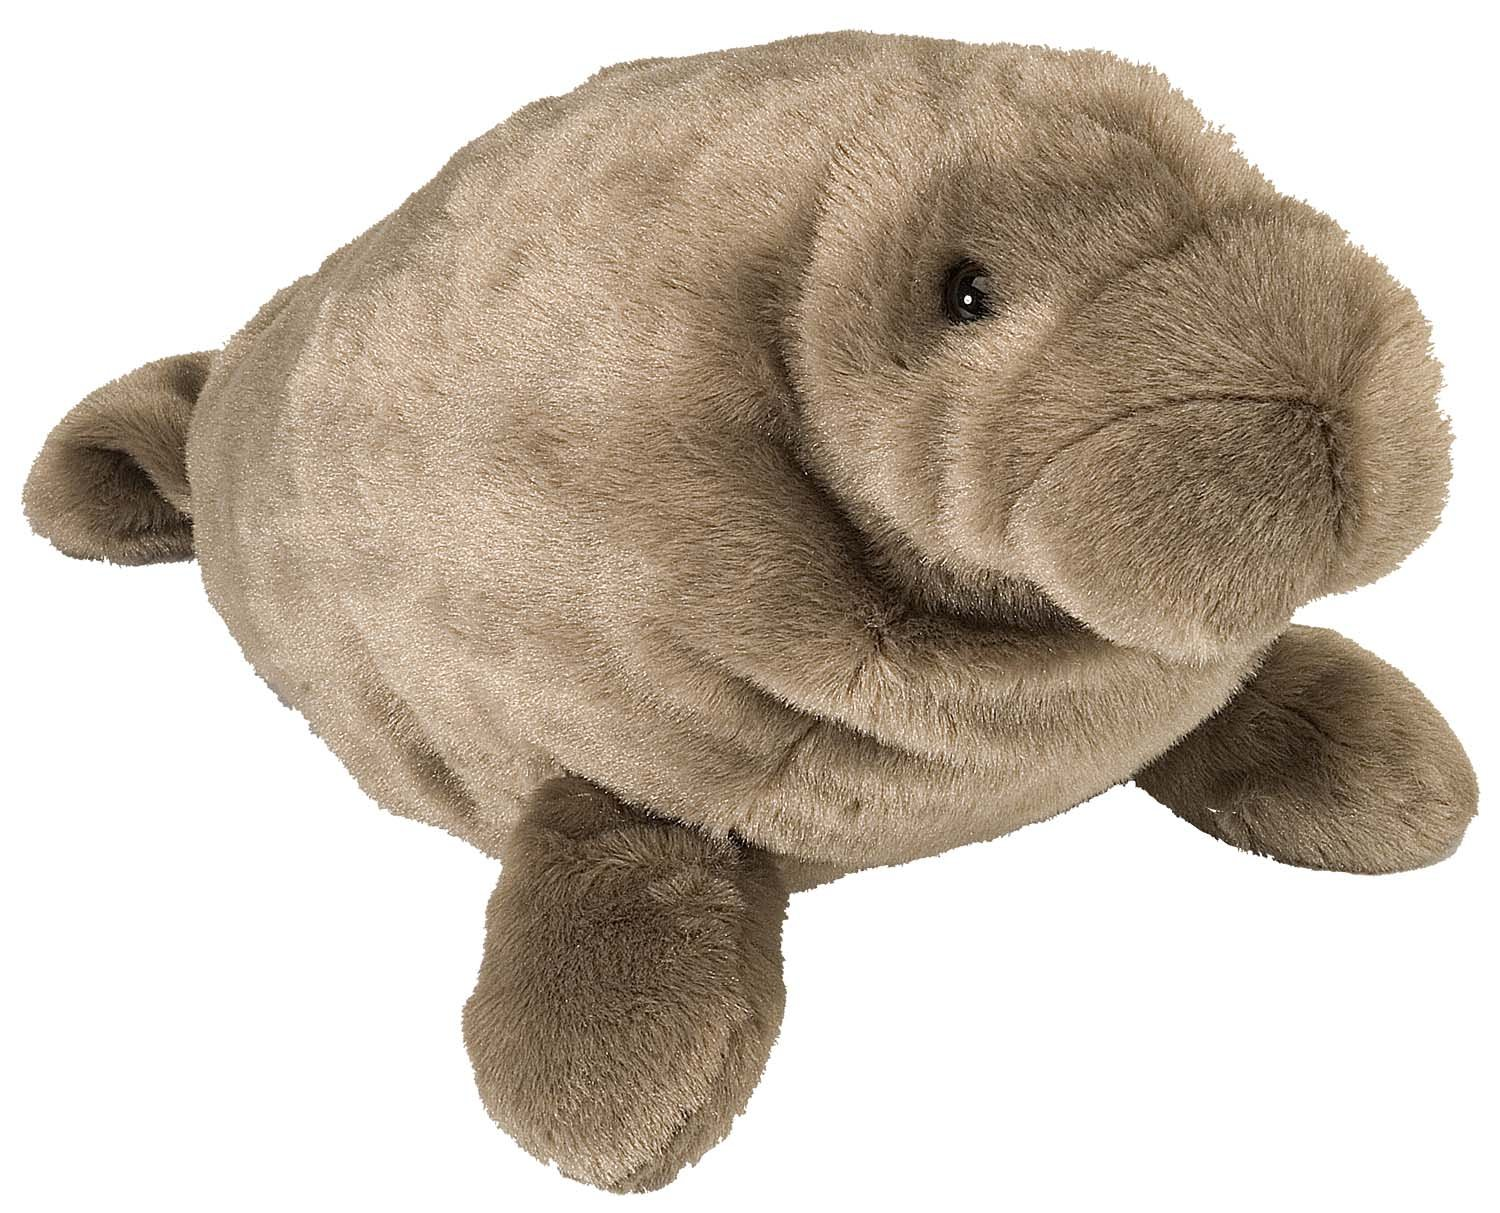 Super Awesome Manatee Gifts! O-M-G for Manatee! - Gift Canyon